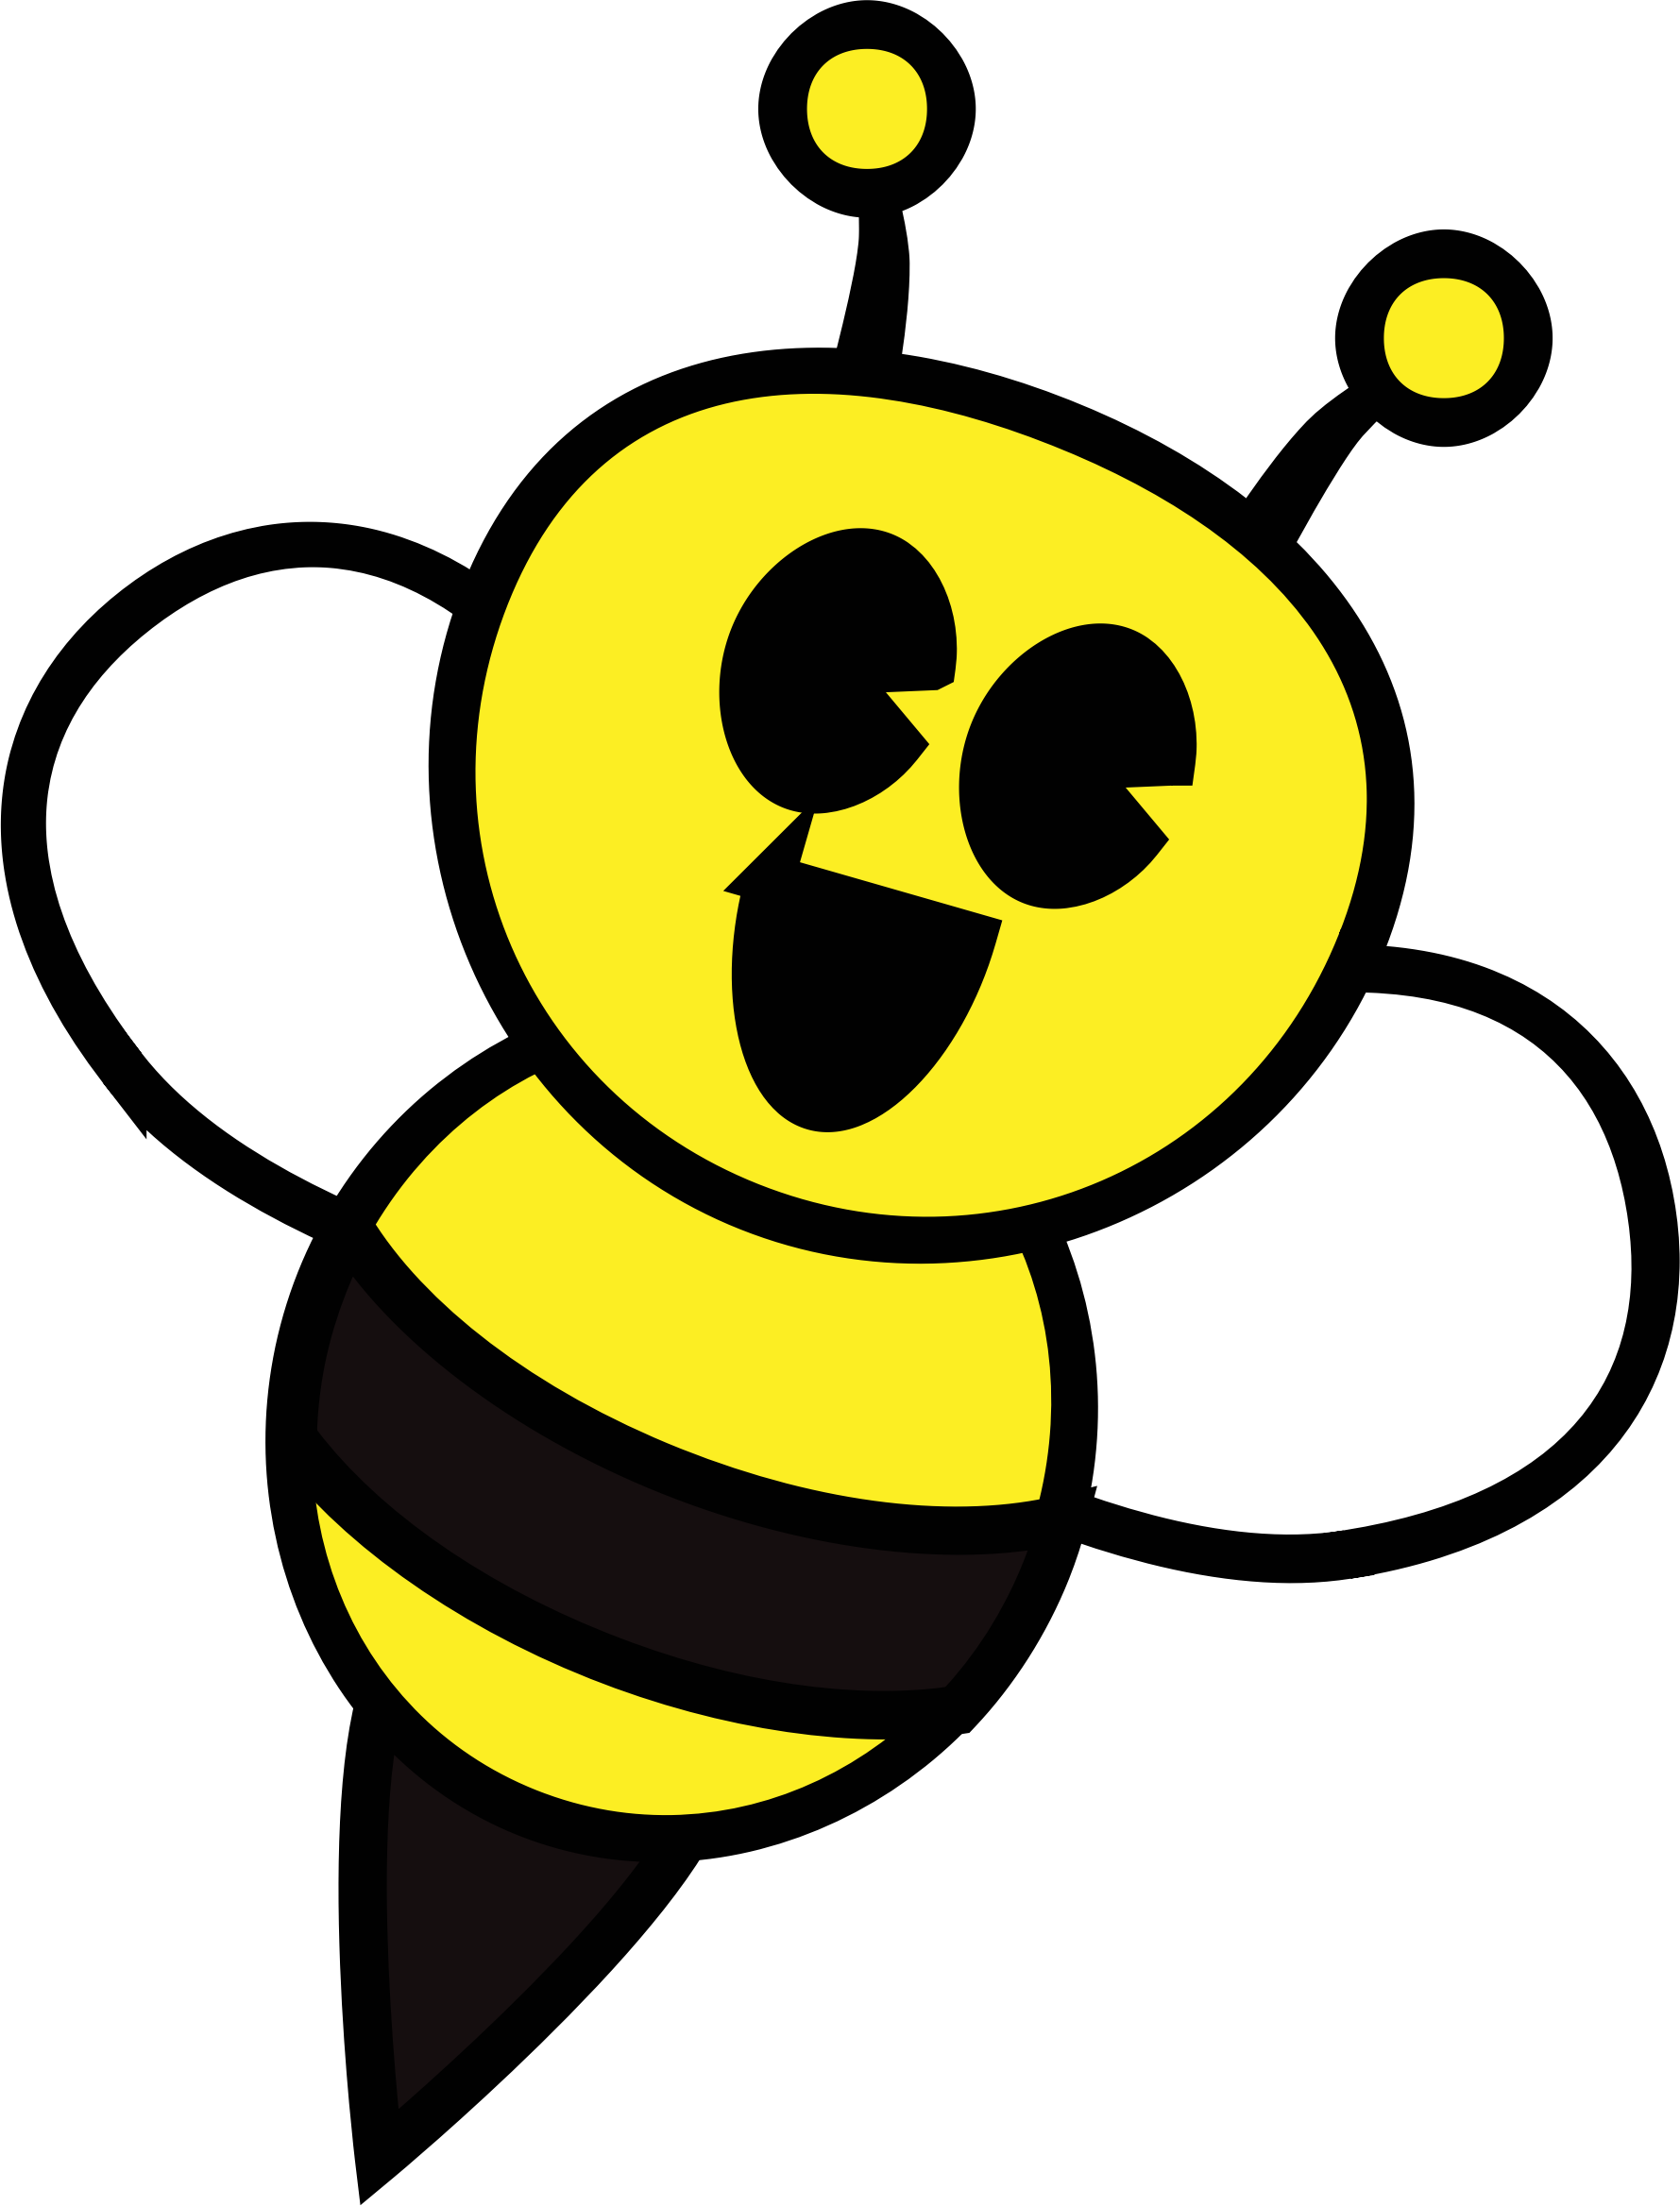 Criminal clipart happy. Bee big image png